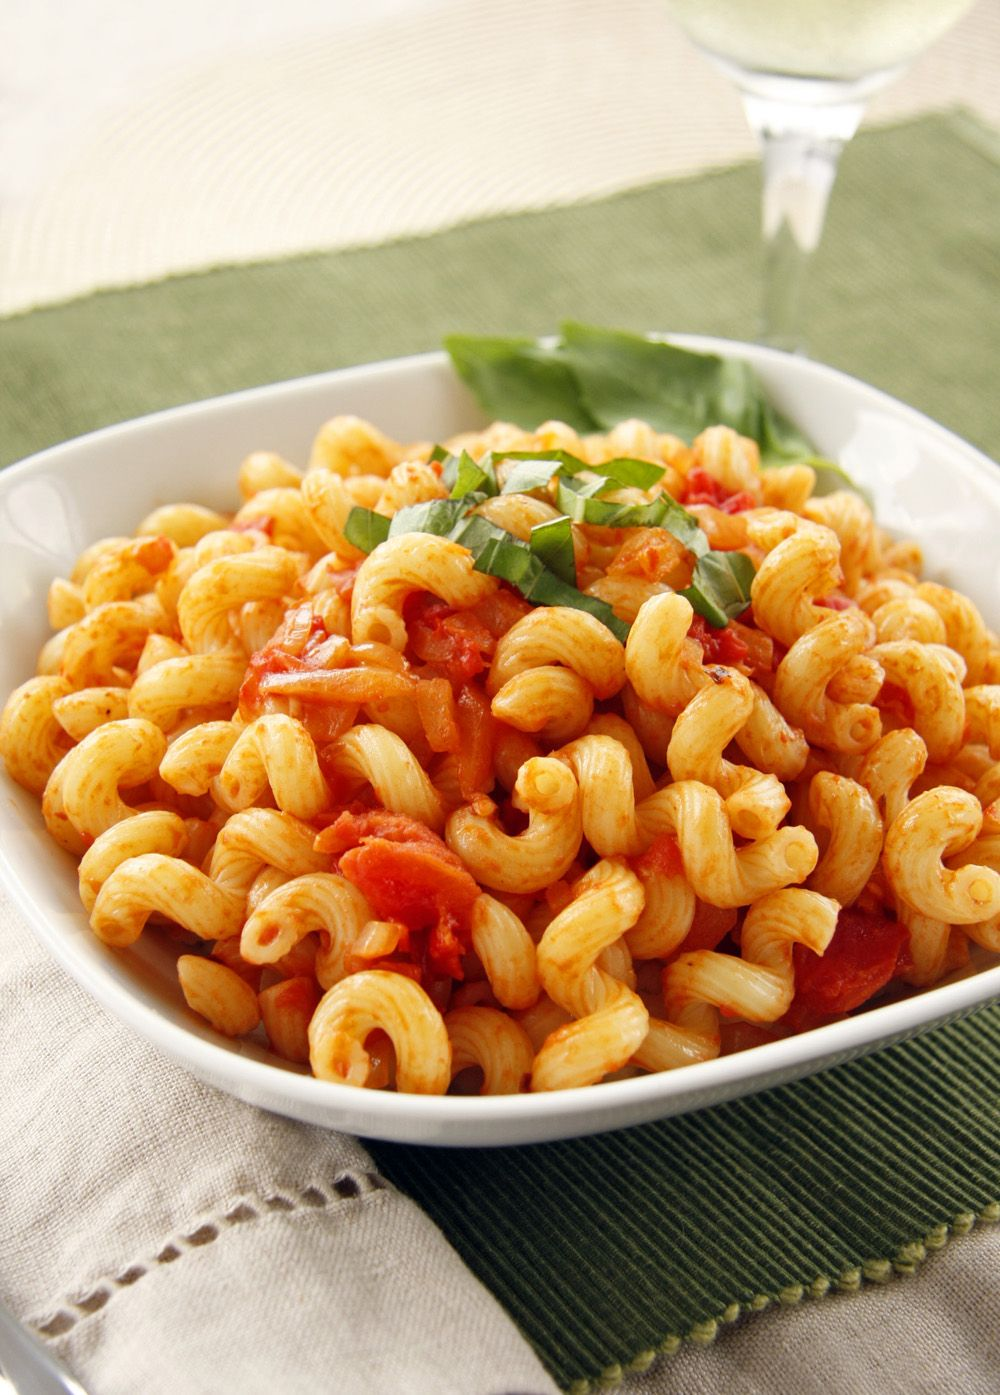 Cavatappi Amatriciana | A Carrabba's Recipe Redo by dashofeast #Cavatappi_Amatriciana #dashofeast